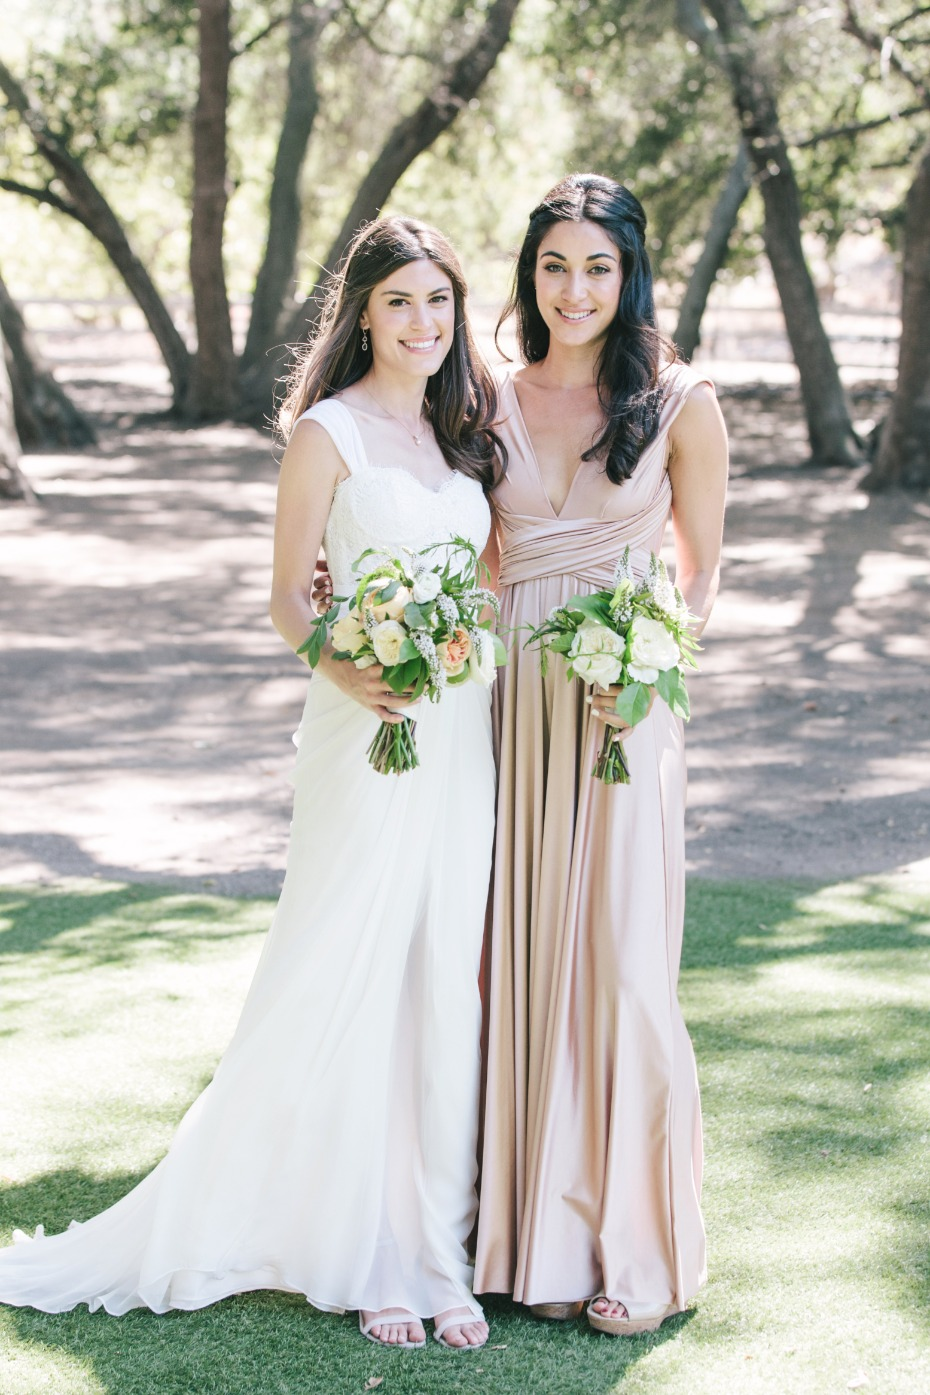 a bride and her maid of honor